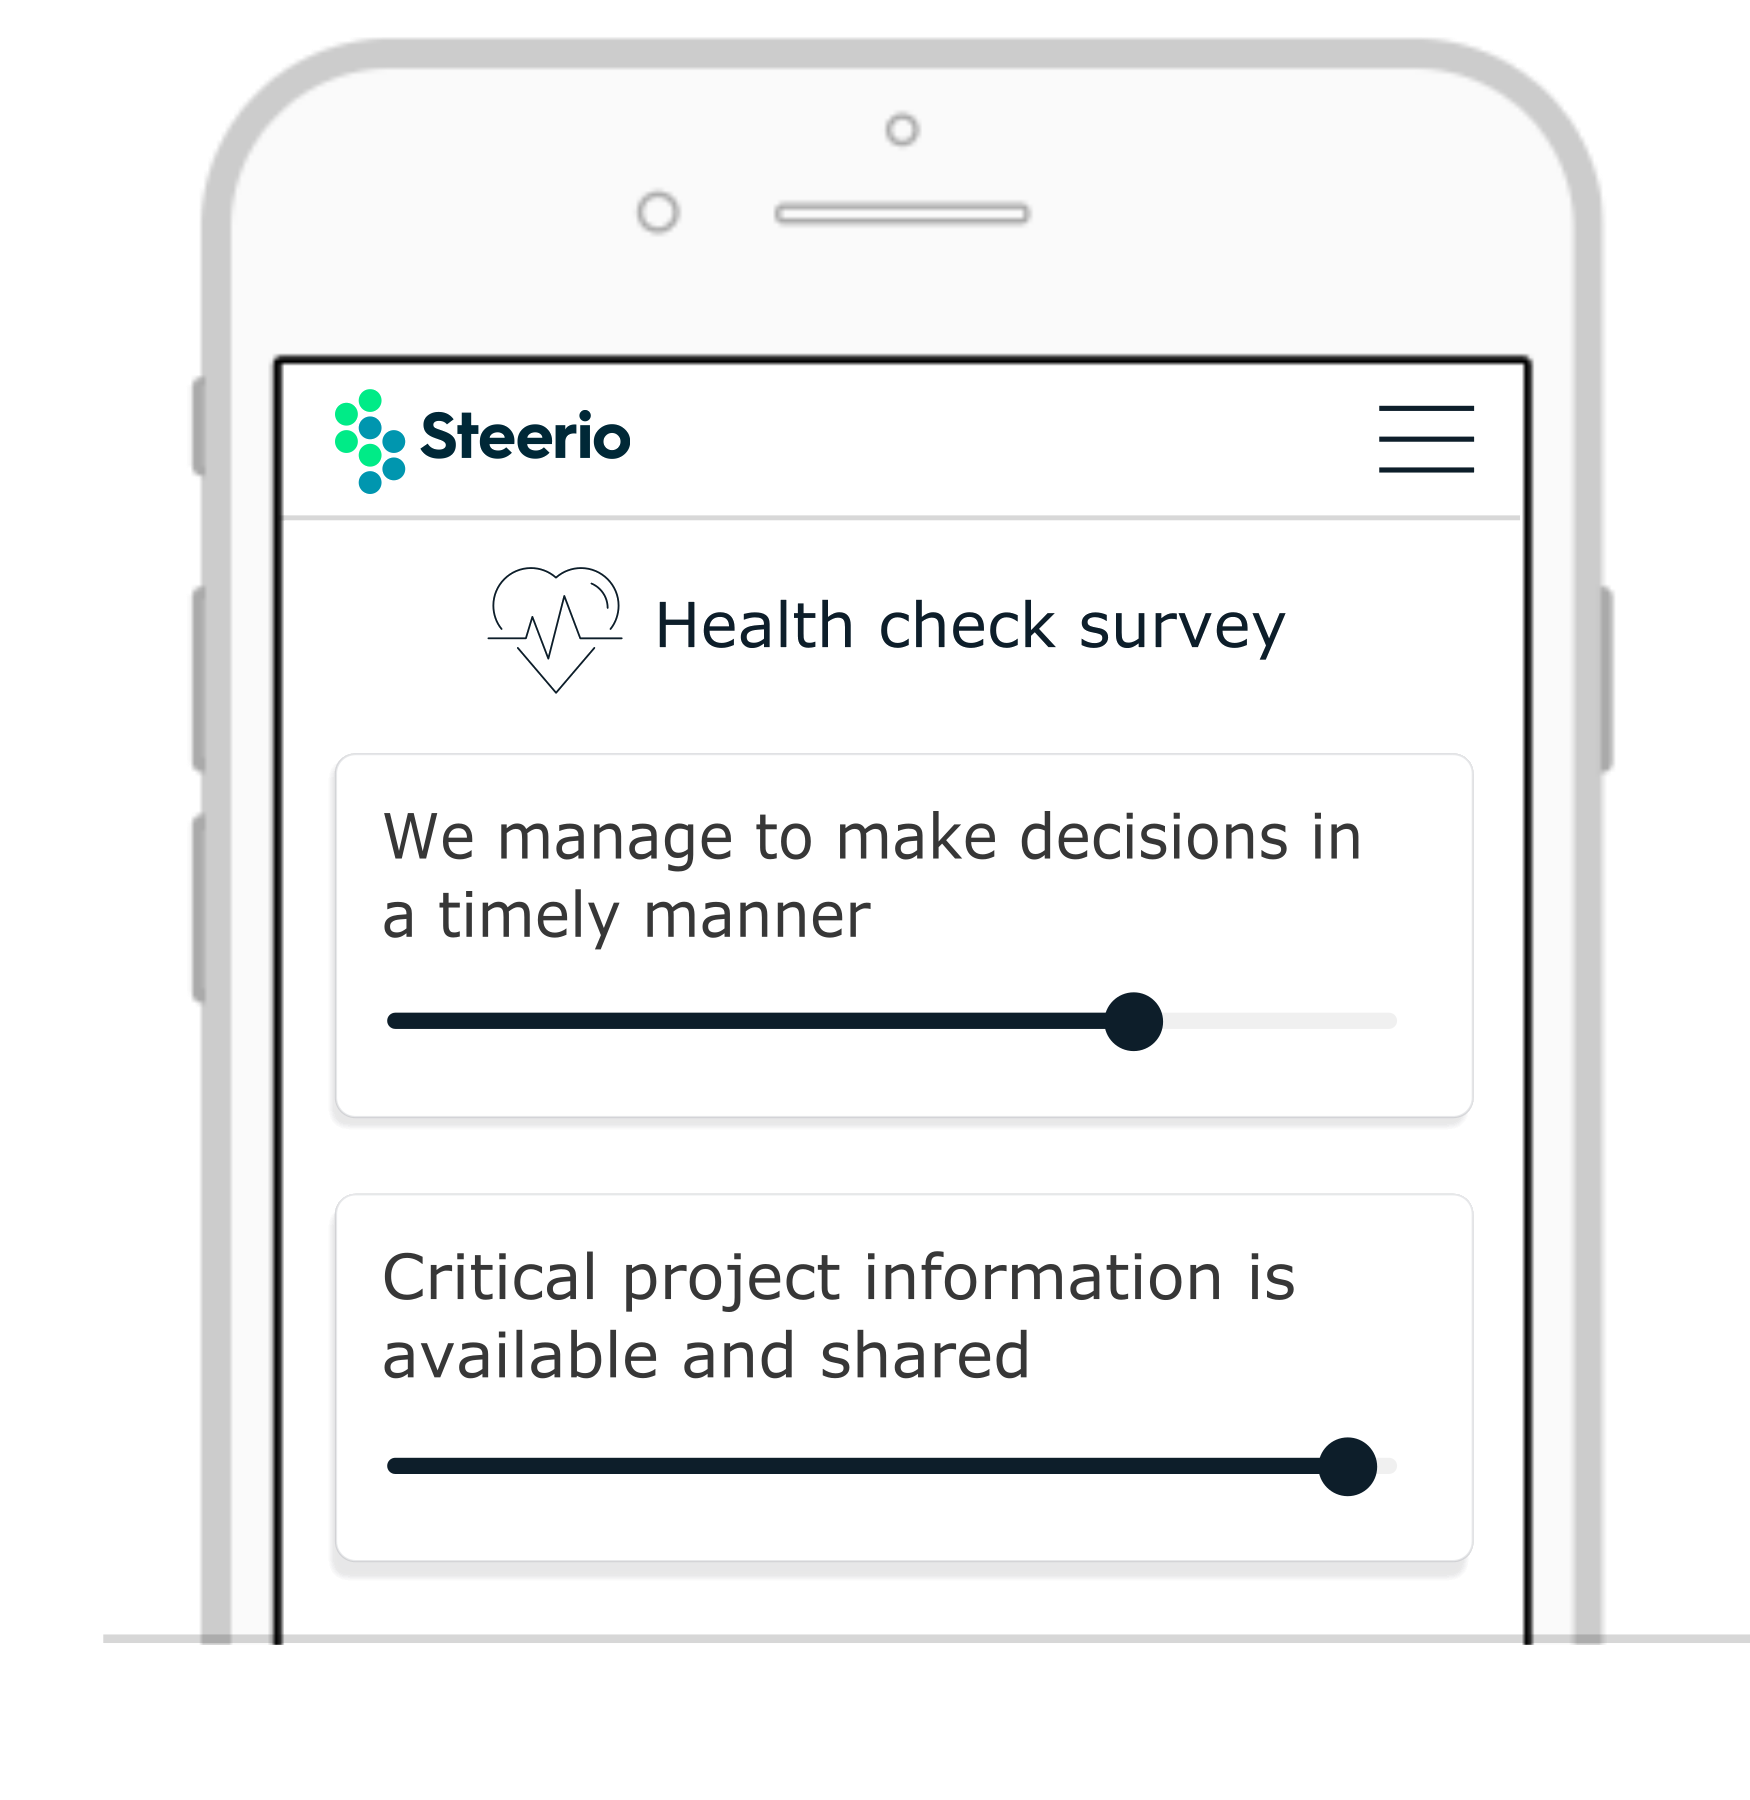 It takes only 3minutes to provide insightful feedback with a health check survey